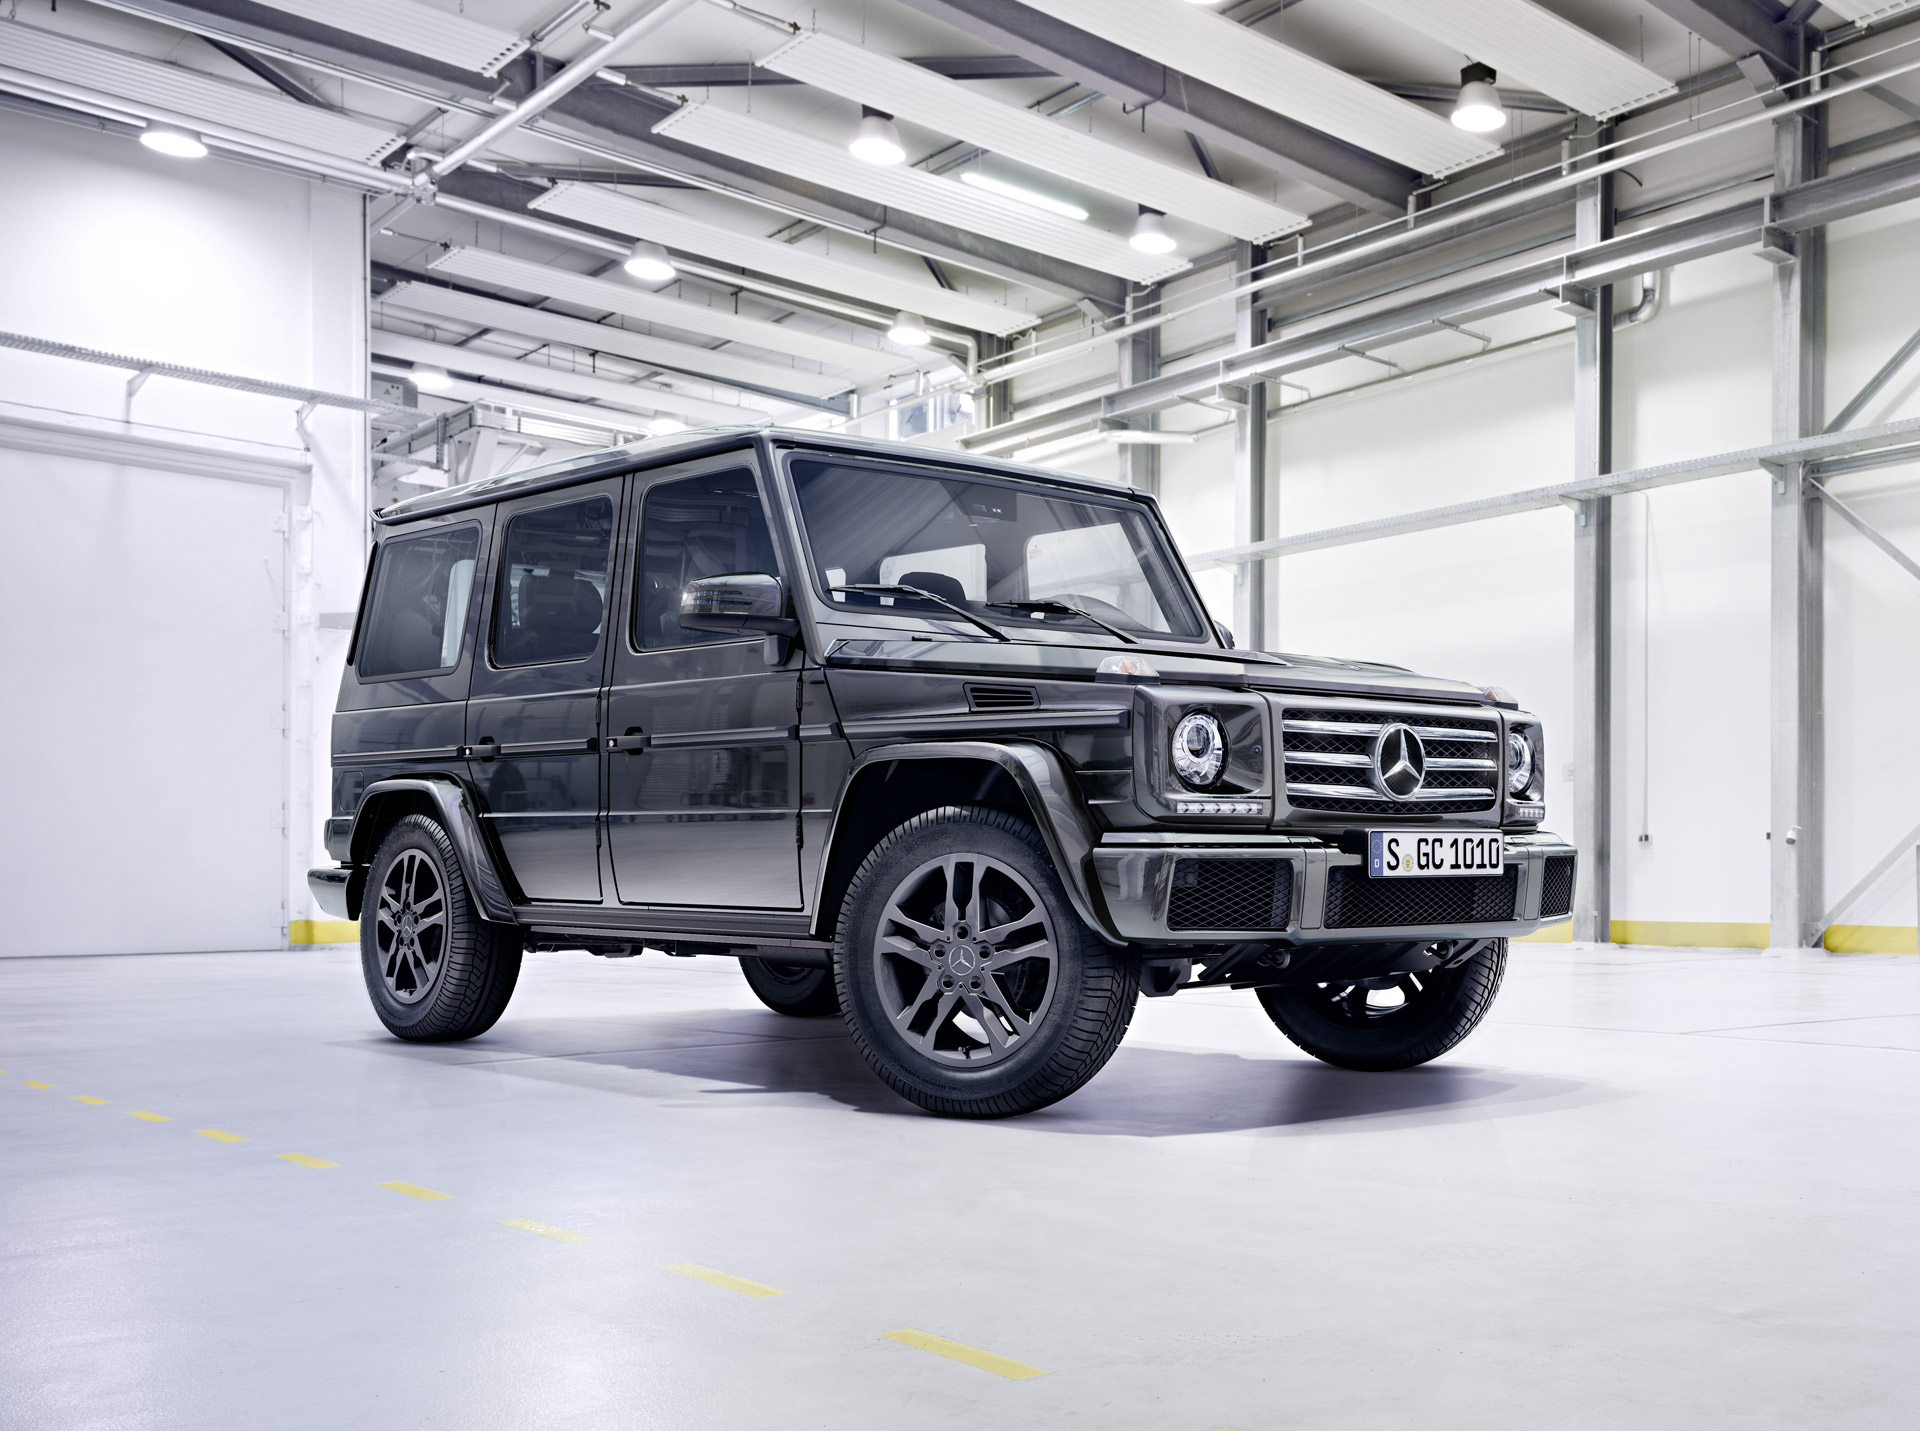 2016 mercedes benz g class pricing starts at 120 825. Black Bedroom Furniture Sets. Home Design Ideas